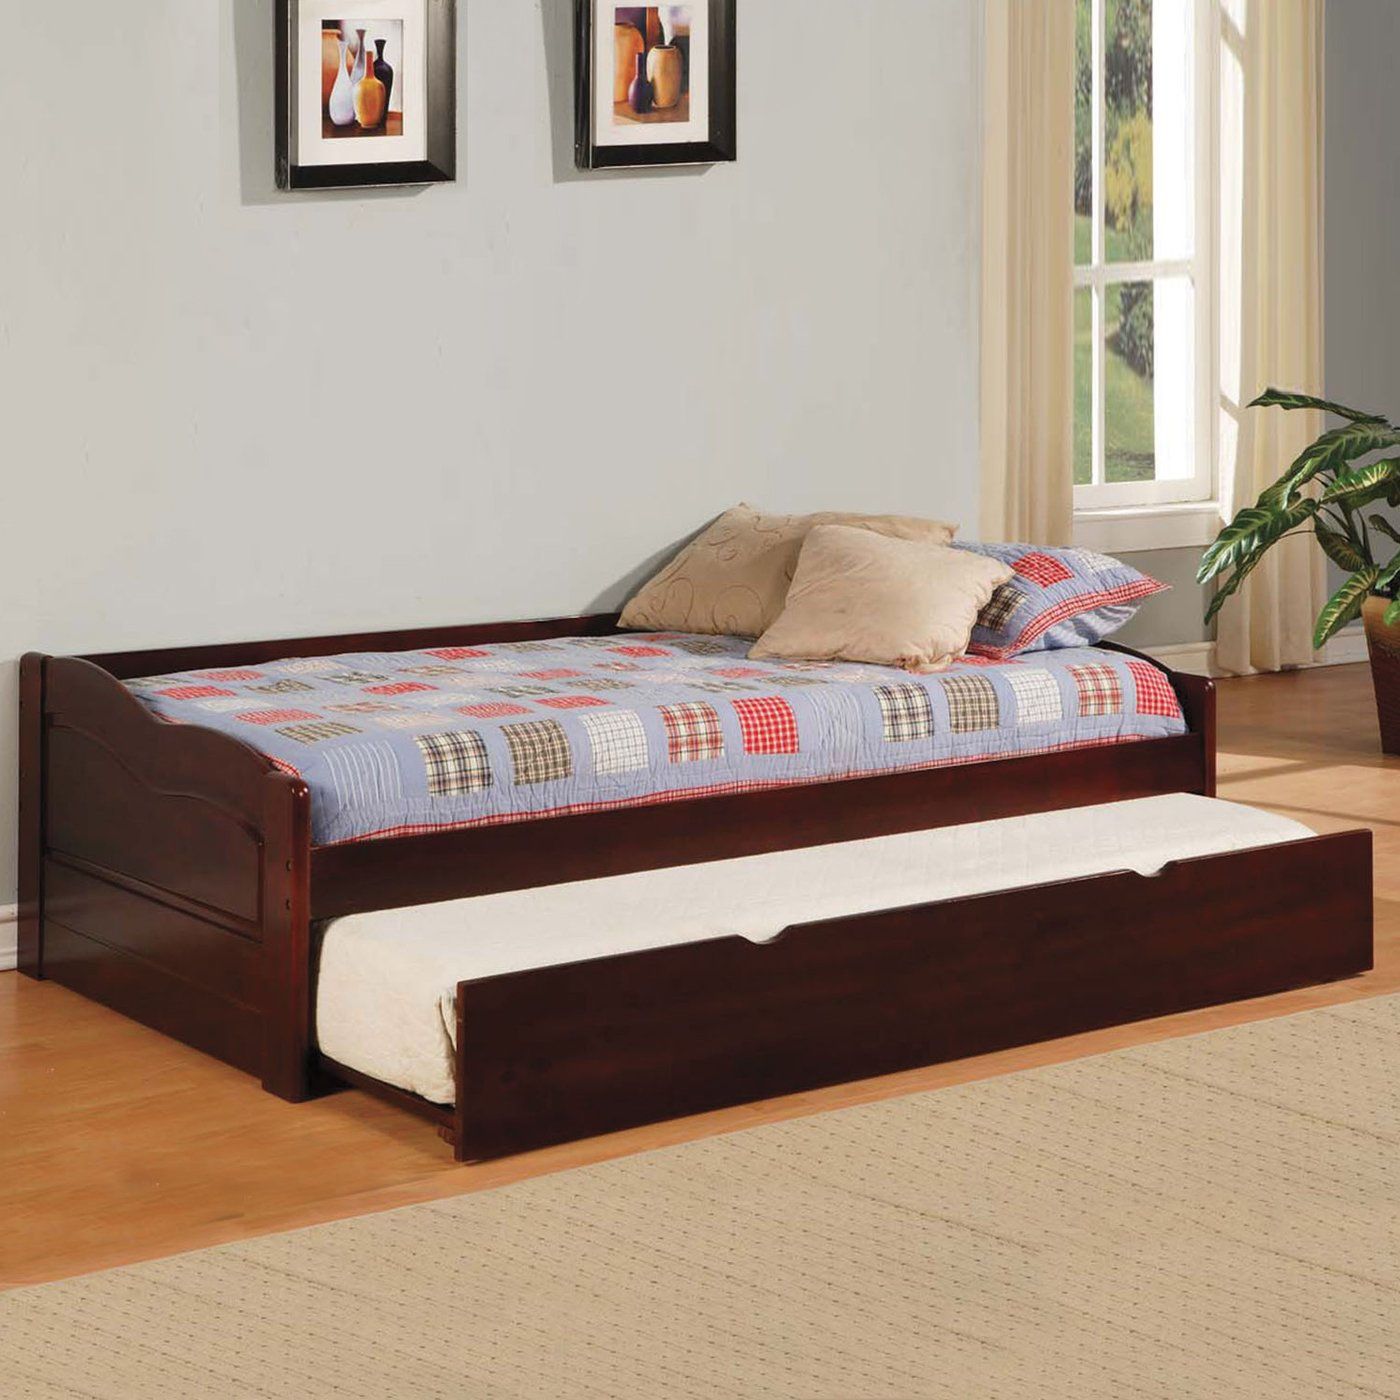 Full Size Daybed with Trundle | White Metal Daybed | Daybed Mattress